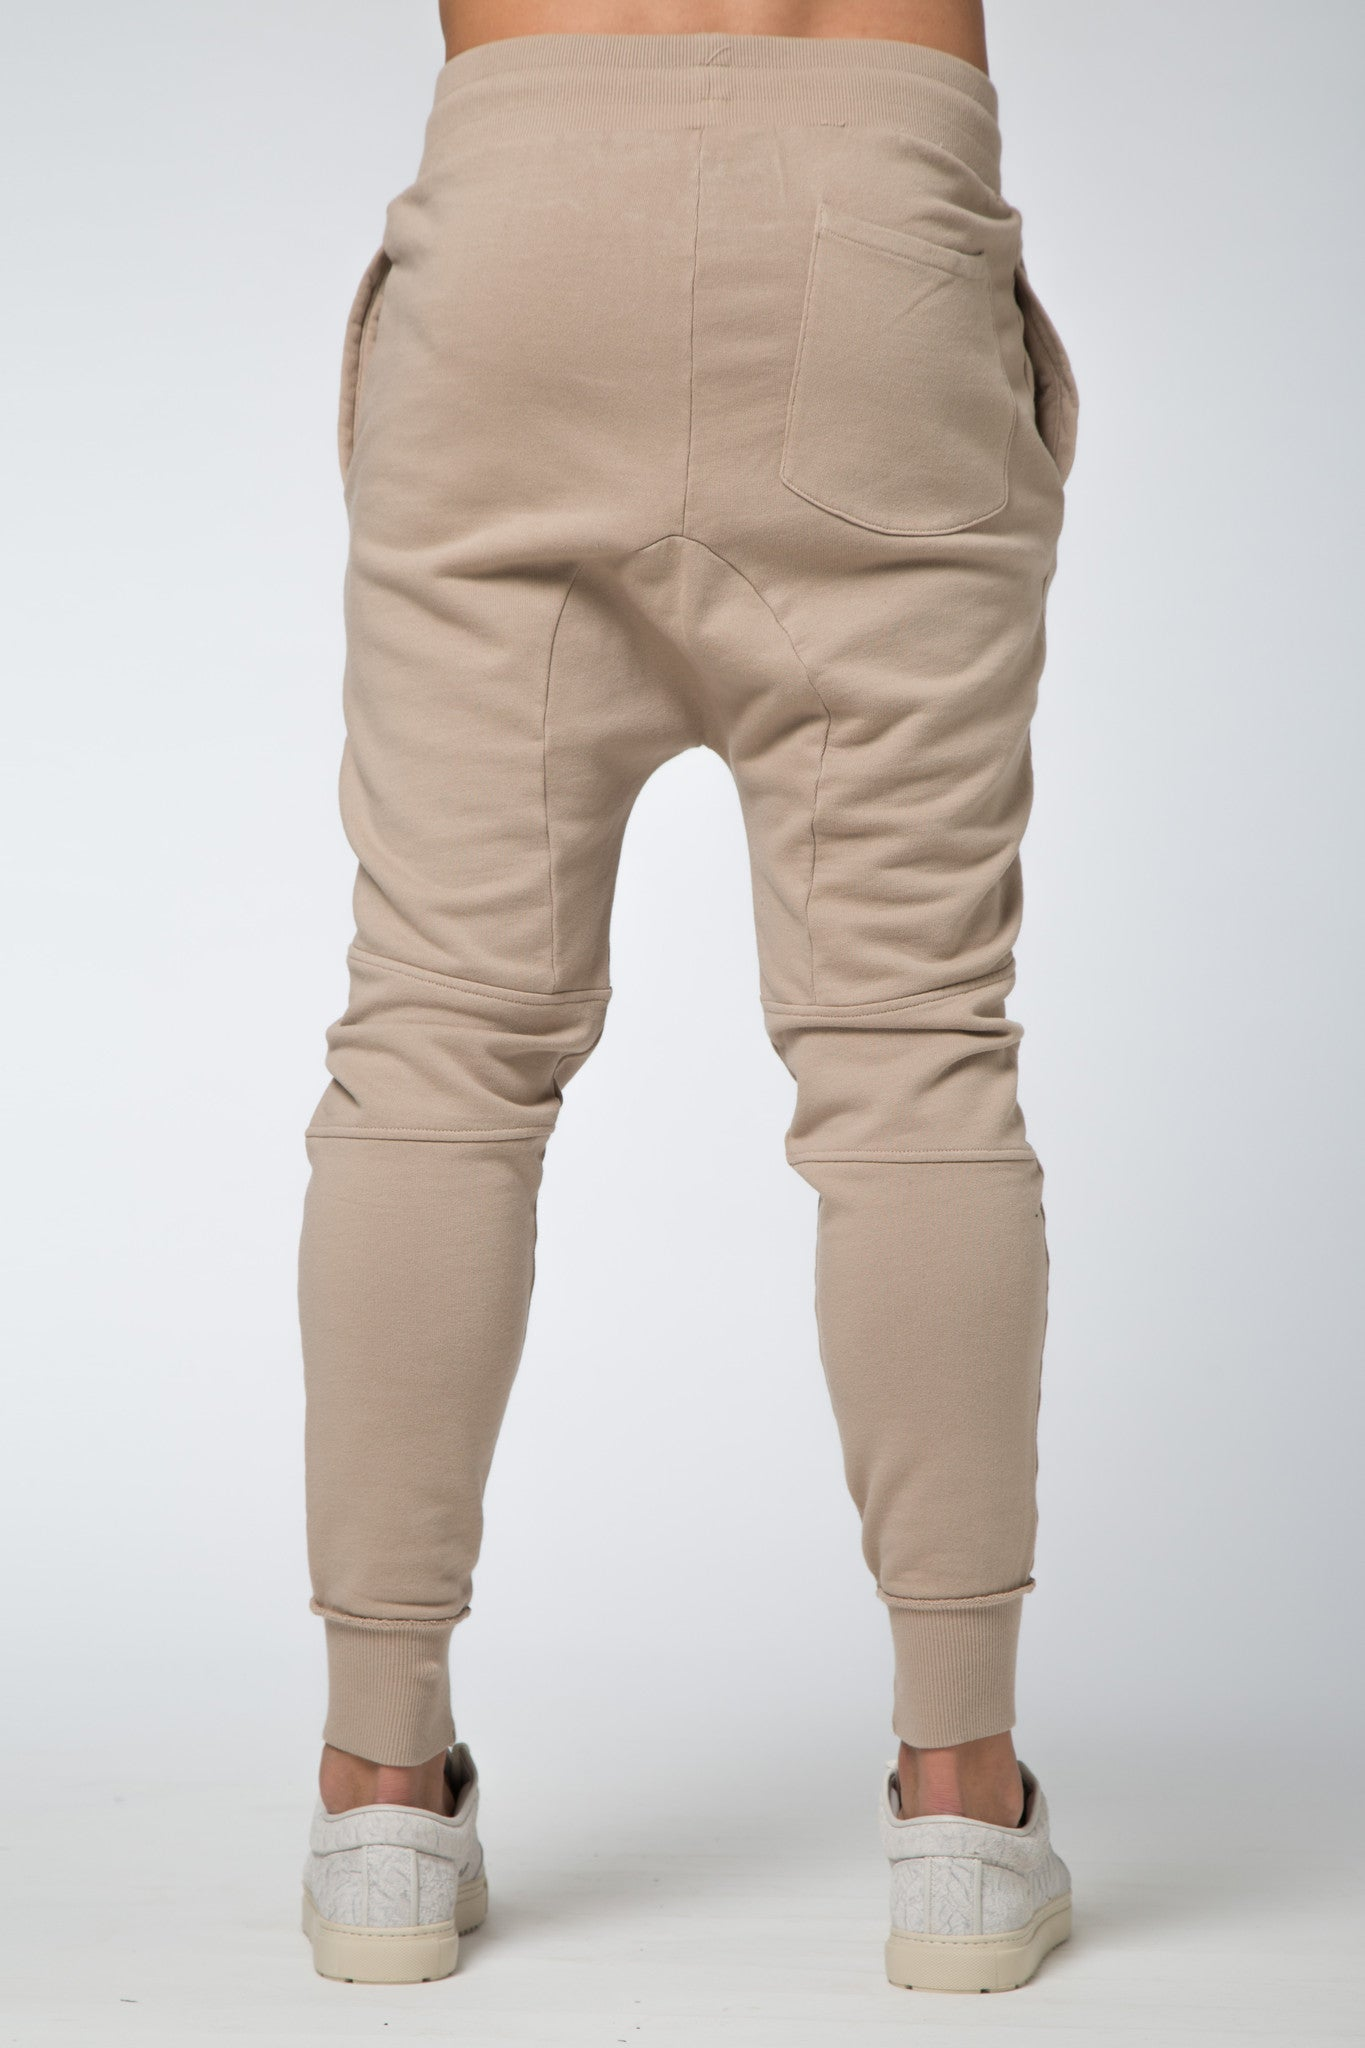 Avid & Co. [ Taylor ] Sweatpant Taupe